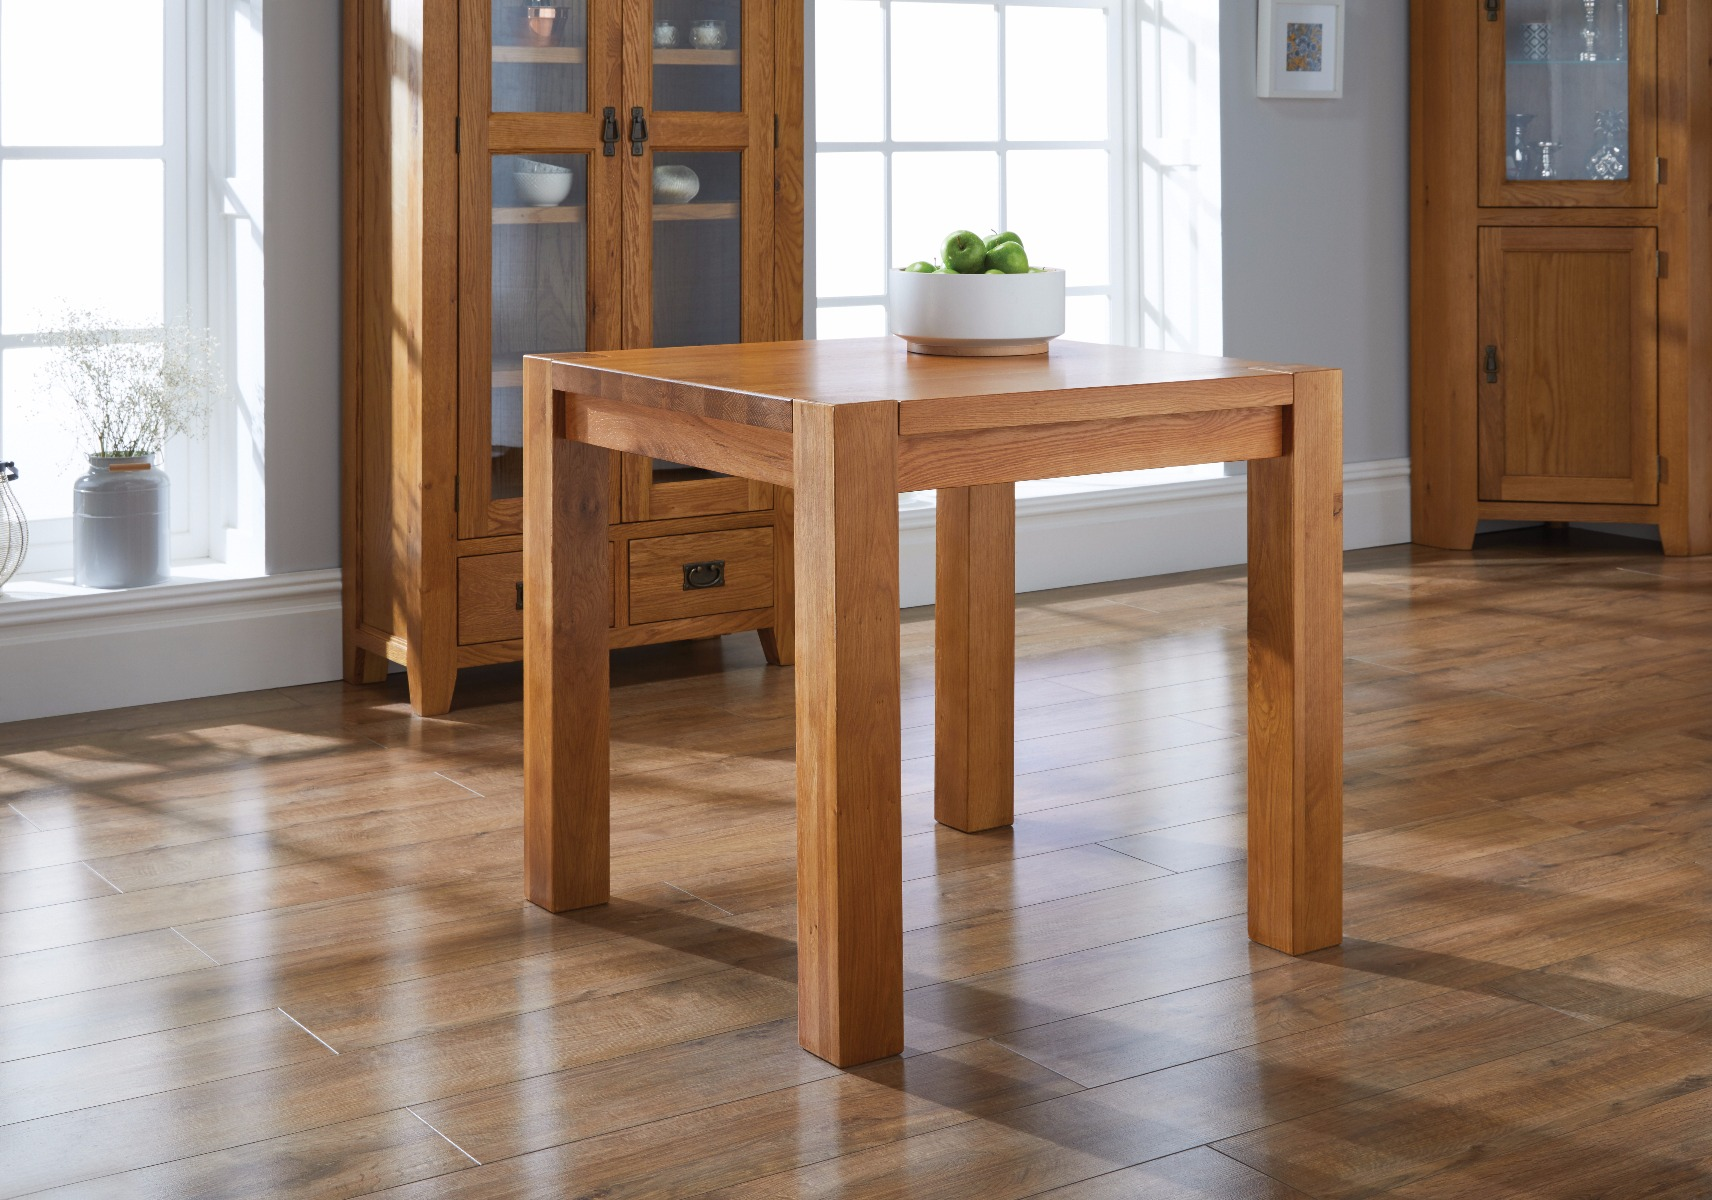 Country Oak 80cm Square Chunky Corner Leg Dining Table